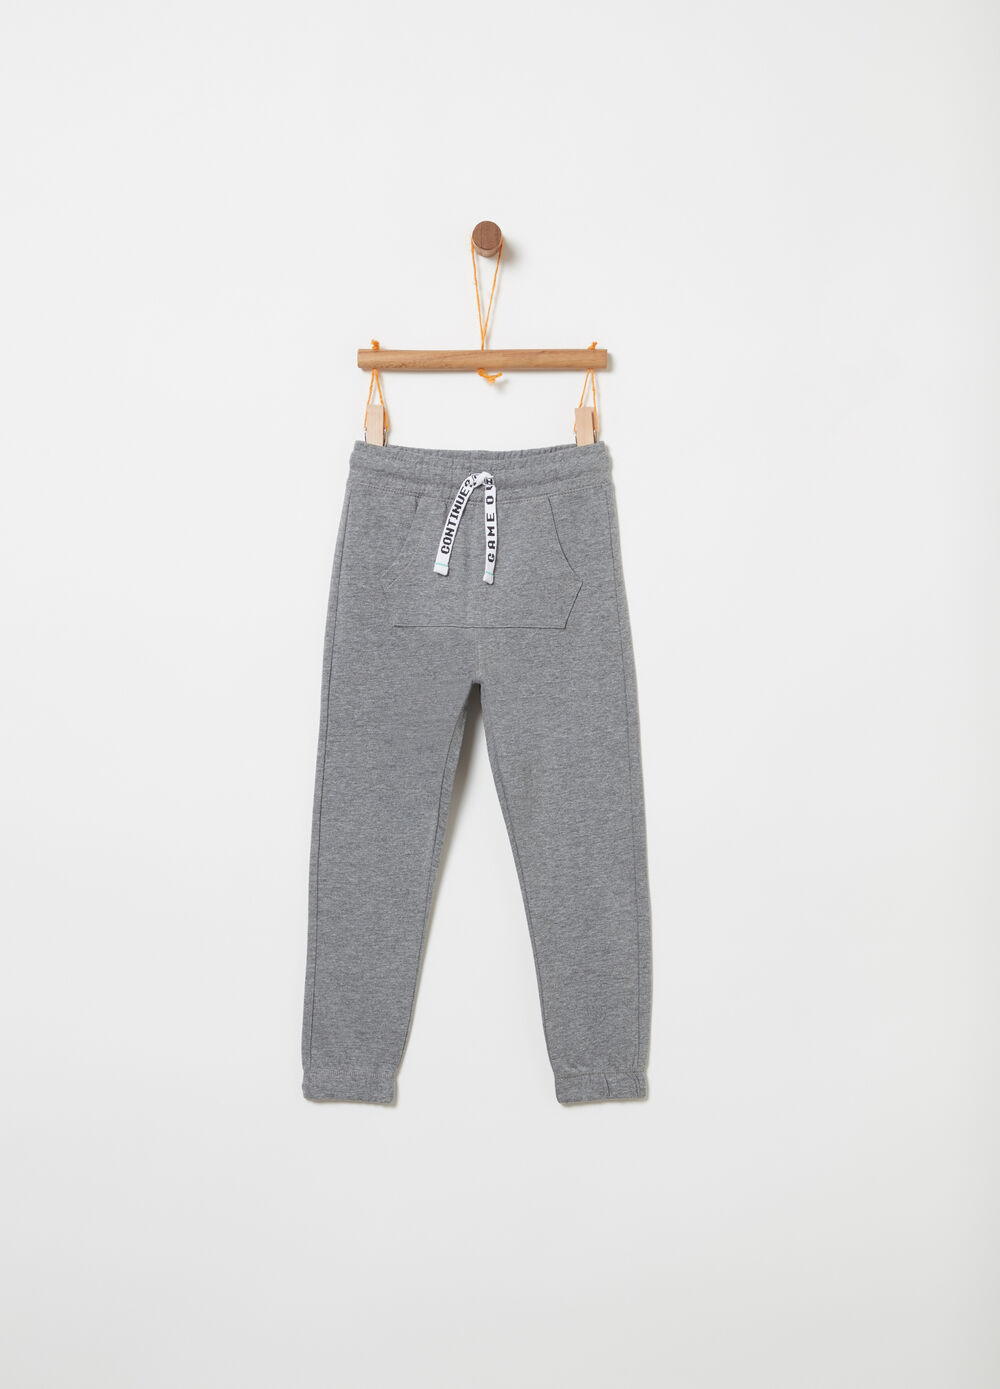 Lightweight fleece trousers with drawstring